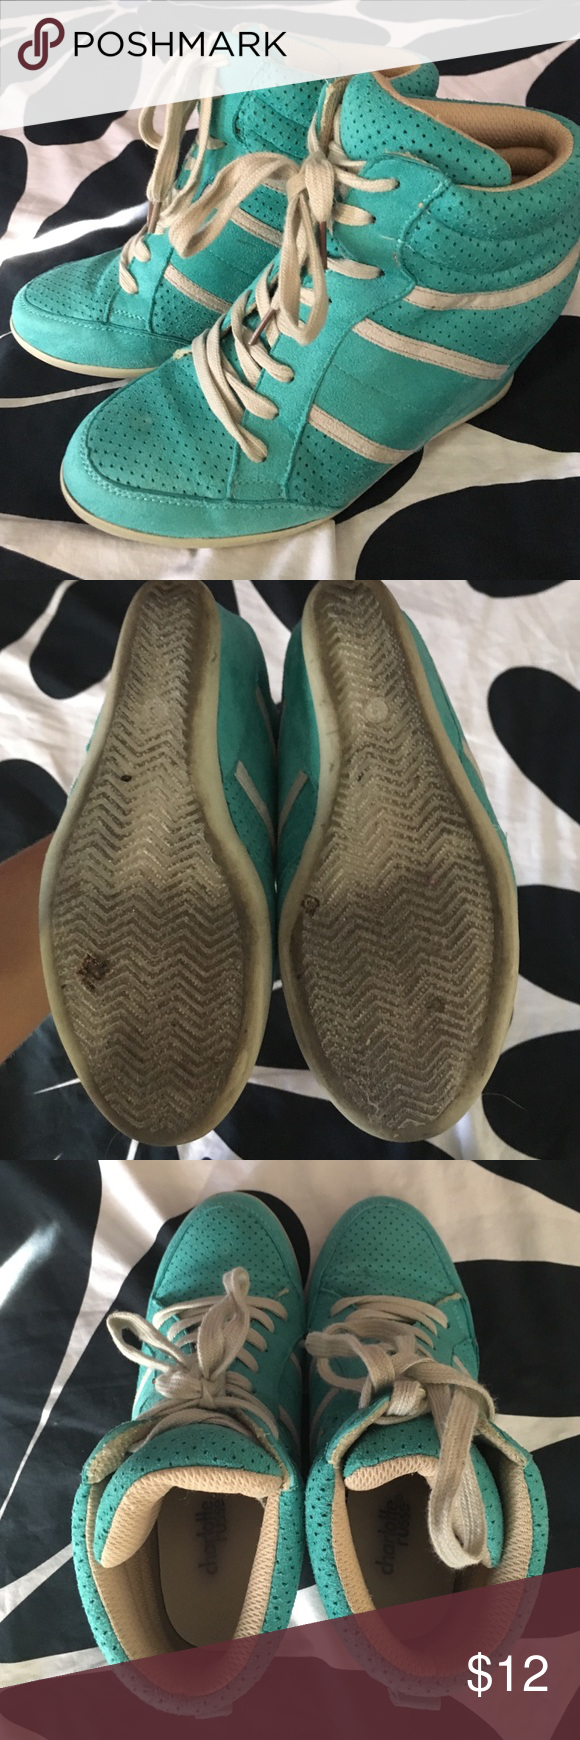 Charlotte Russe Sneaker Wedges Charlotte Russe, sneaker wedges! Used, but in great condition. Charlotte Russe Shoes Sneakers